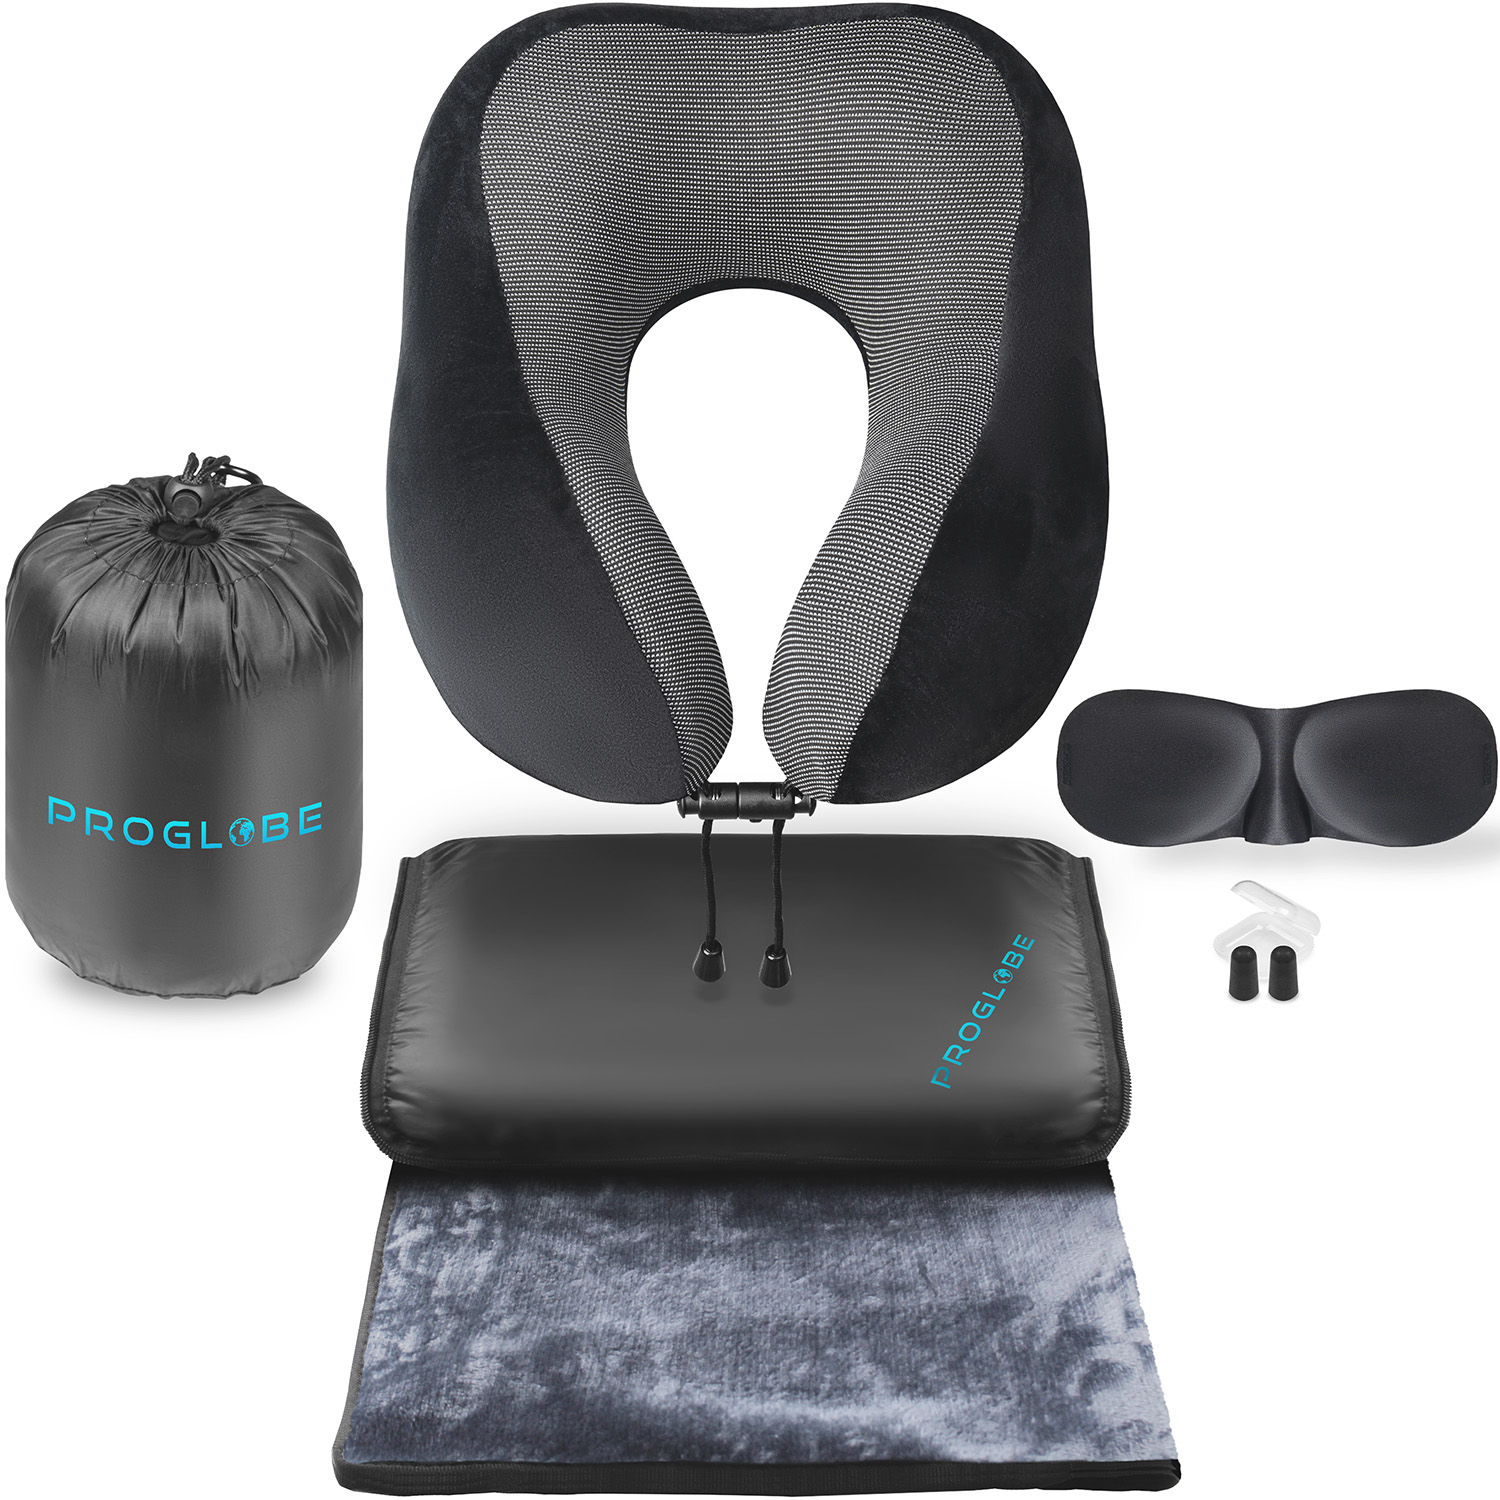 Proglobe Travel Blanket Luxury Travel Set – Ergonomic Airplane Neck Pillow 100% Pure Memory Foam and Super Soft Fleece Blanket – Premium 3D Sleep Mask & Earplugs